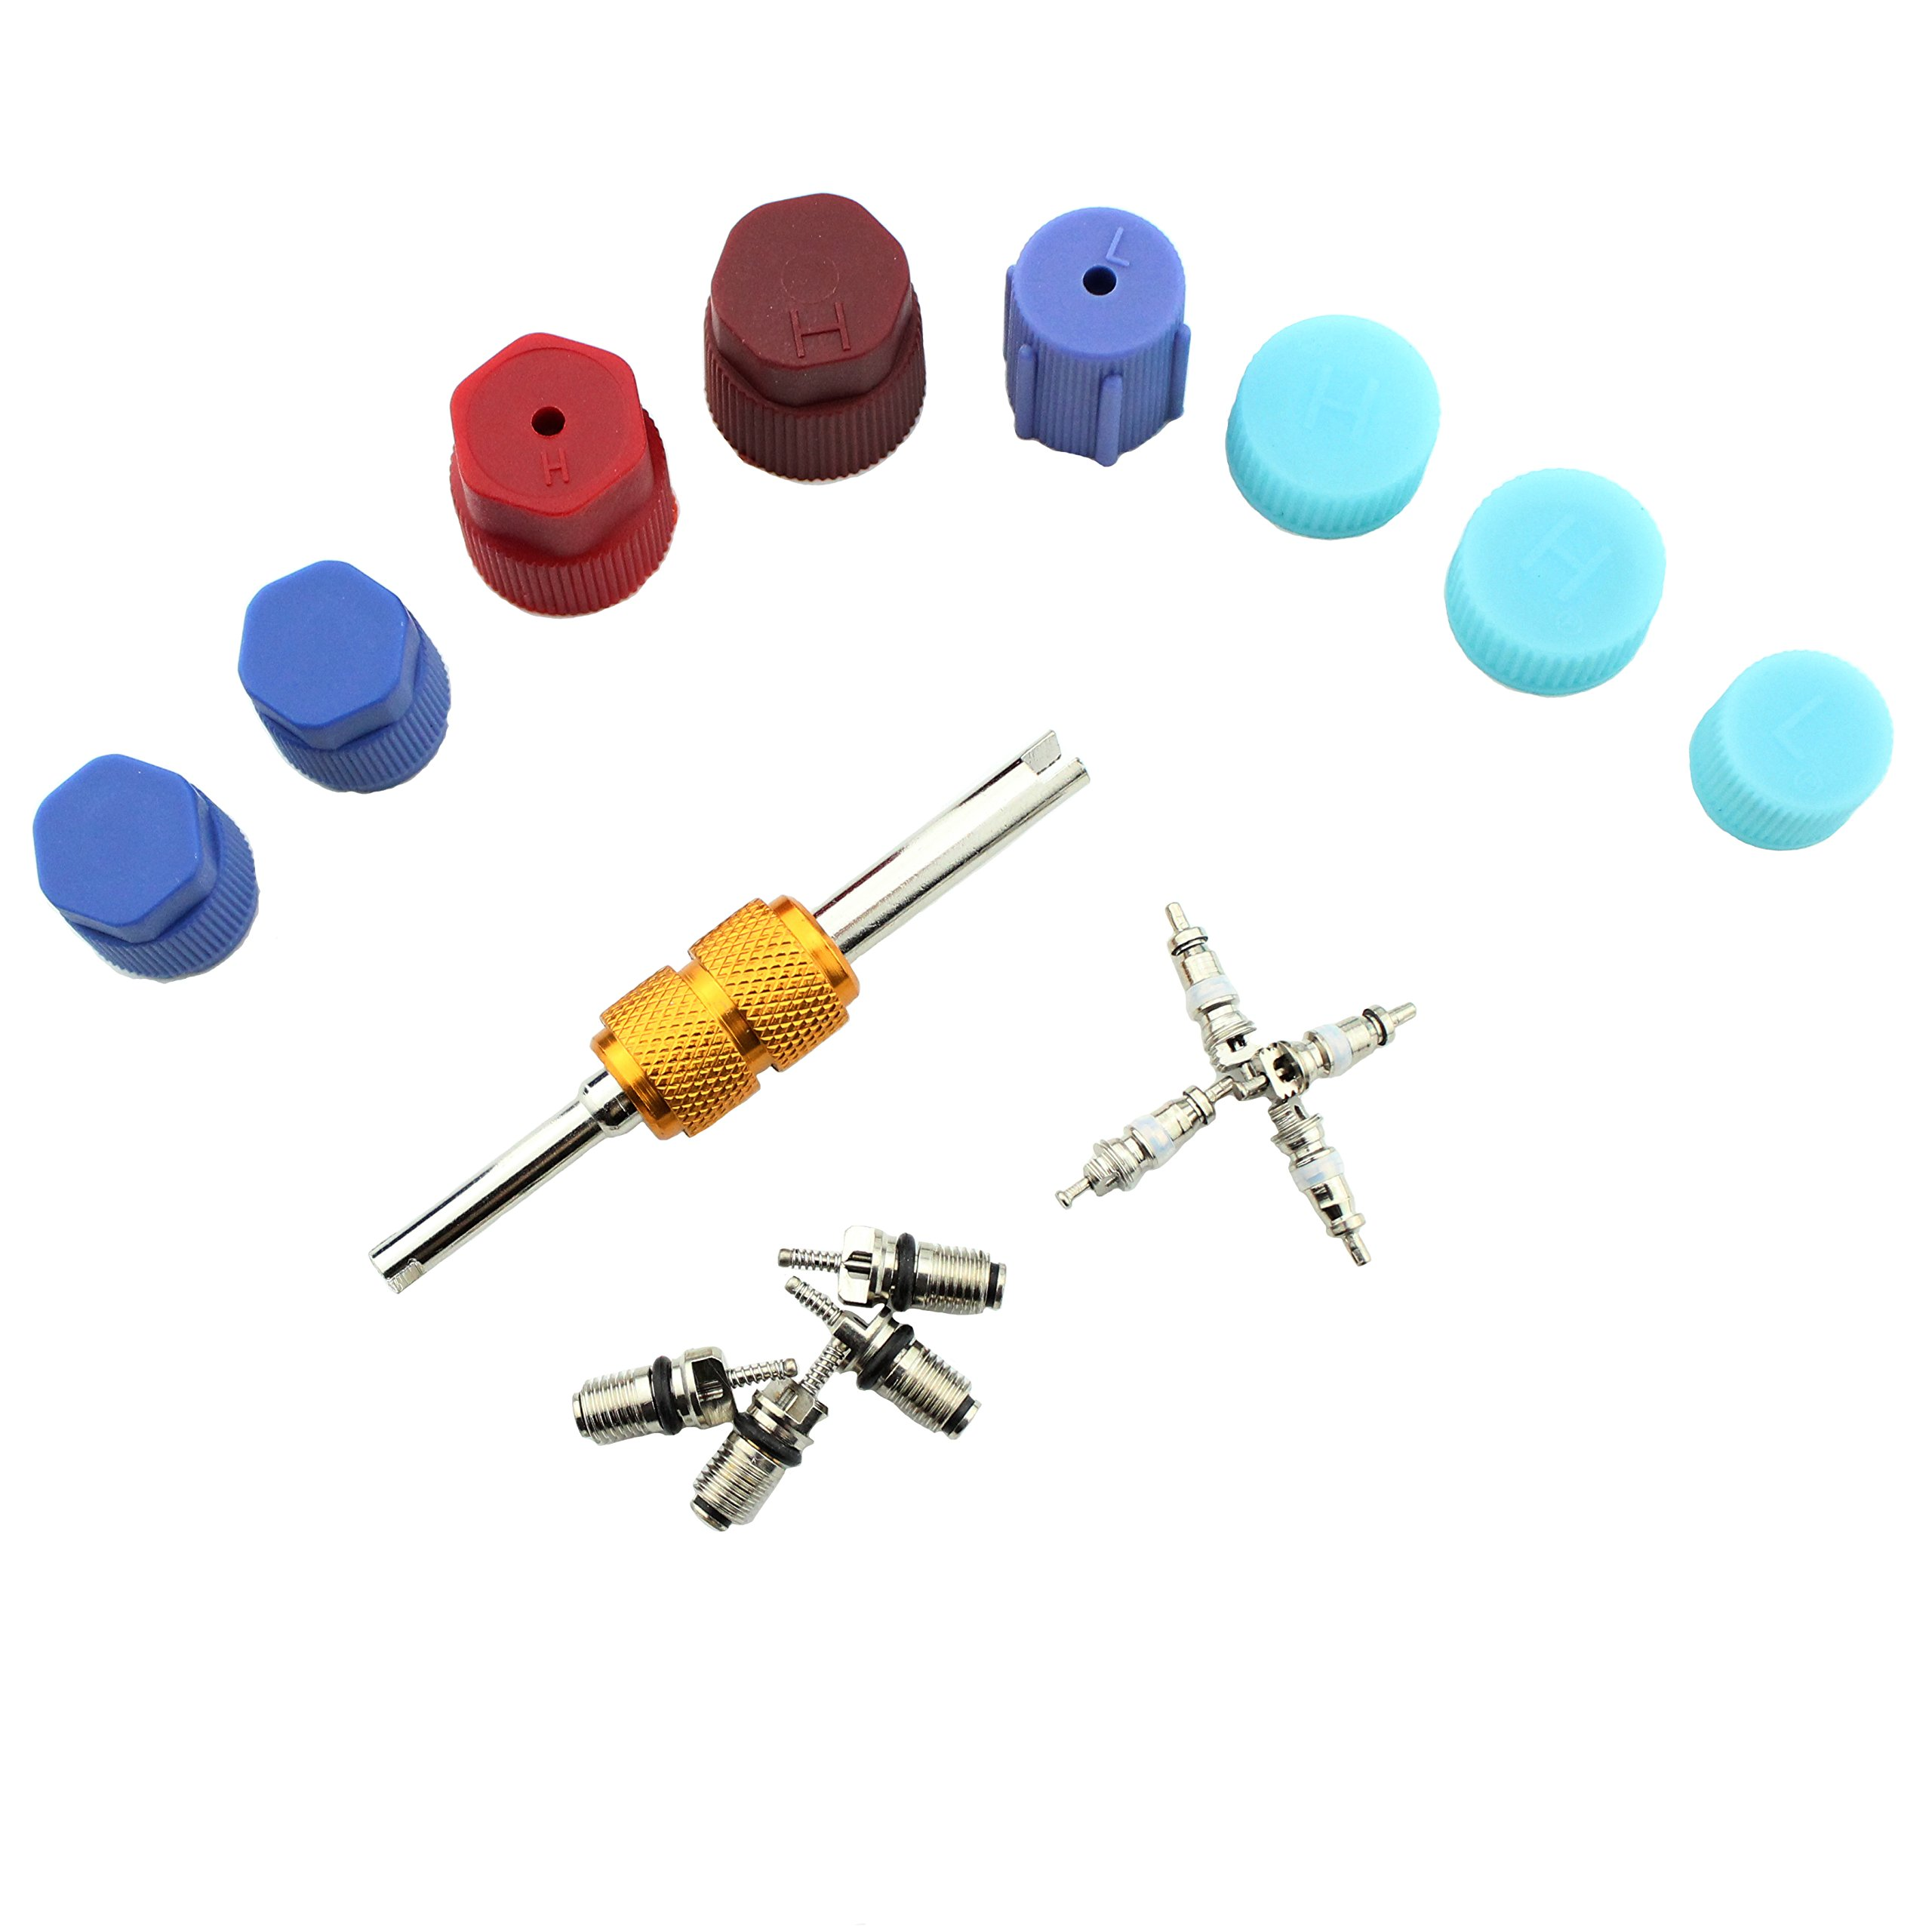 Air Conditioning Valve Core Kit | Car & Home AC R12 R134a Teflon Seal Refrigeration Schrader Valve Core with Valve Stem Core Rmover Tool Air Conditioning System Seal Caps Kit (A/C Kit-)